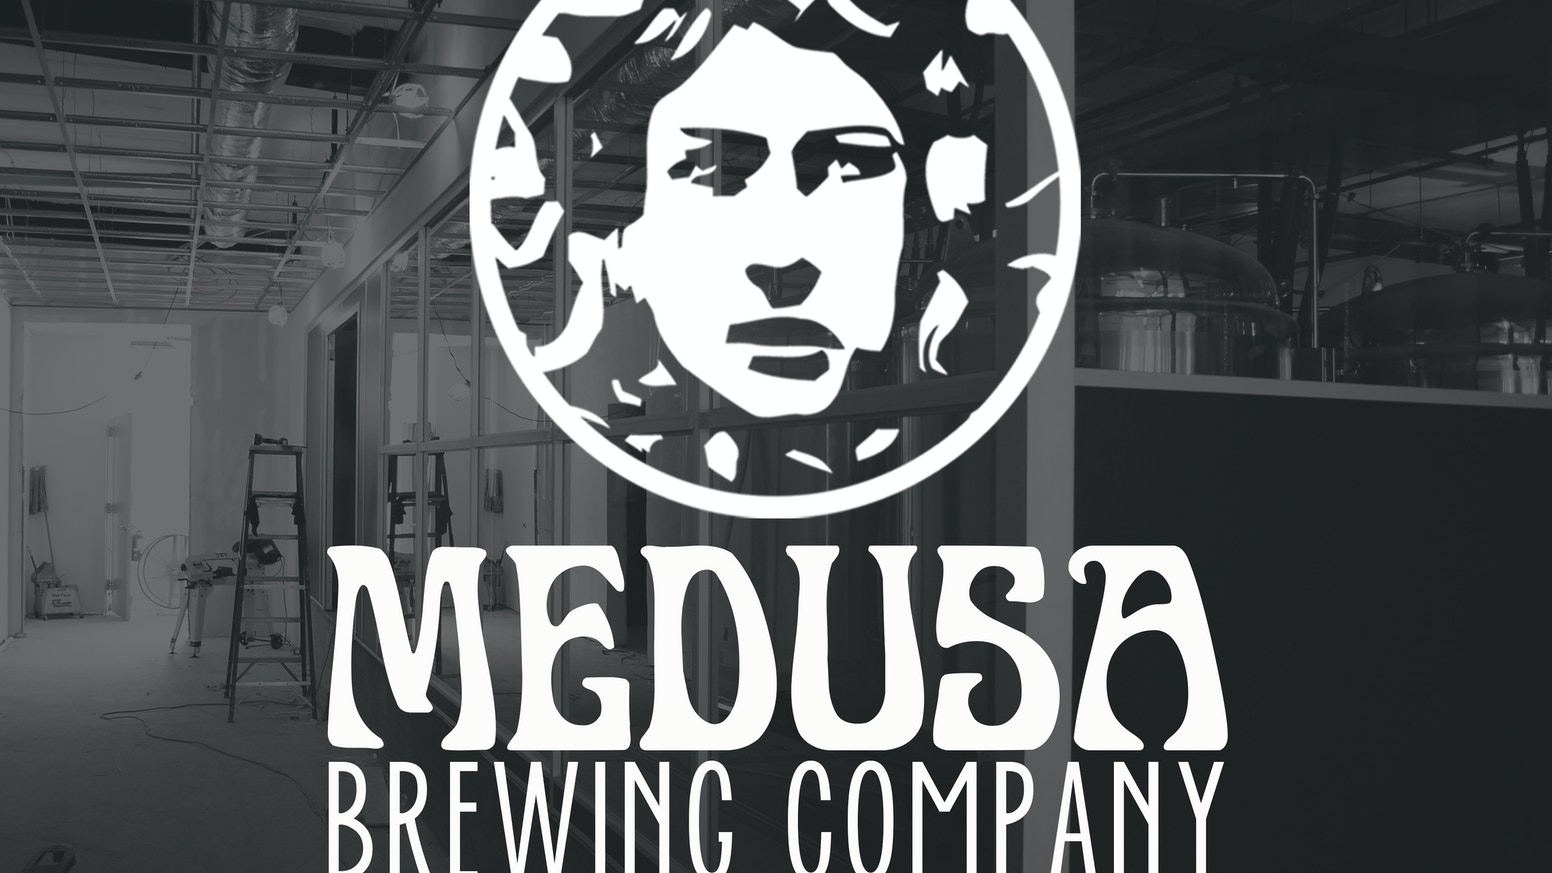 Medusa Brewing Co. was founded in August of 2013 with one goal in mind: Create exquisite beer, and a unique destination in which to serve it.